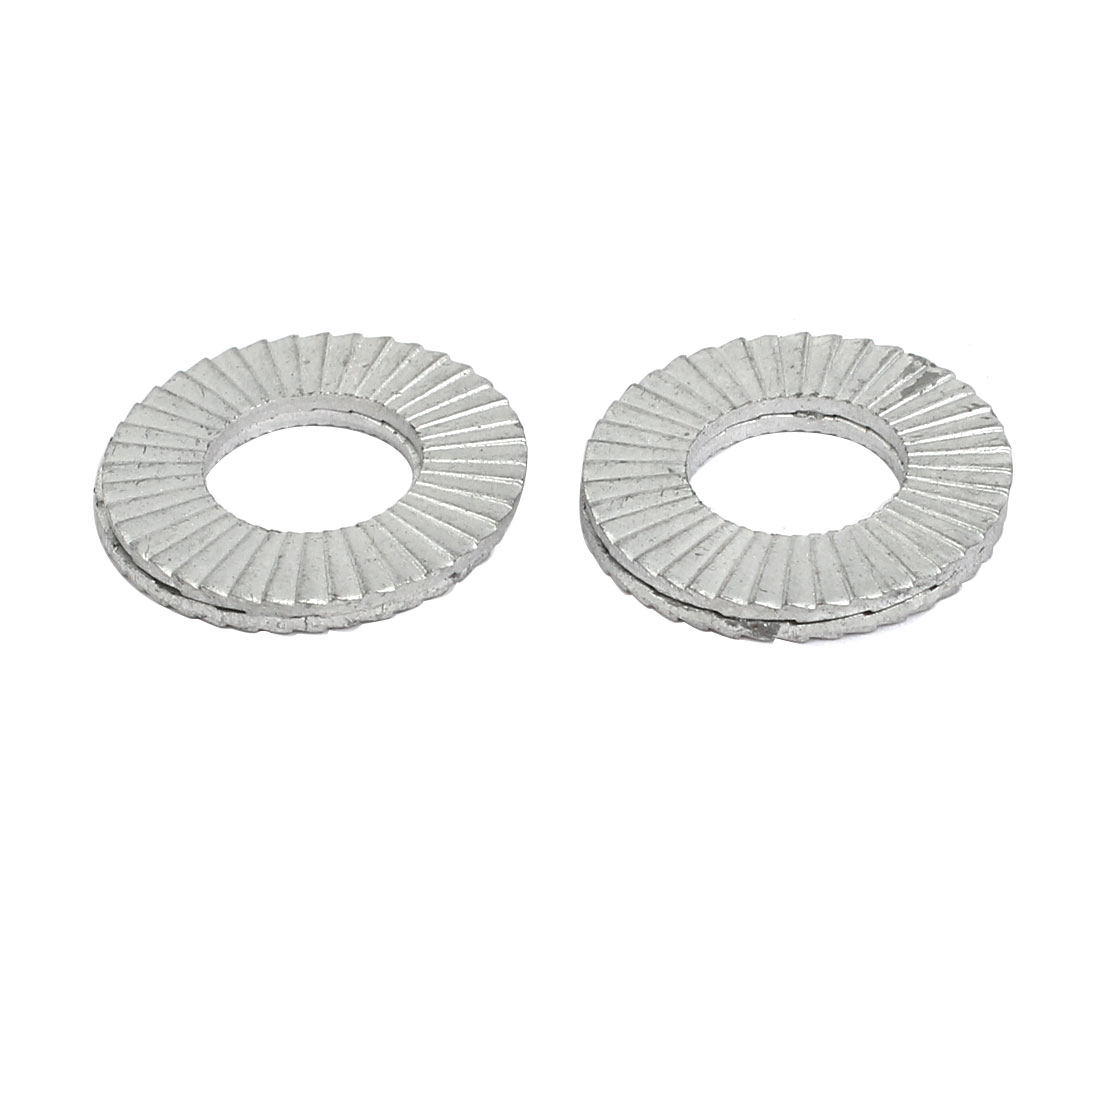 10mm Inner Dia Carbon Steel Wedge Locking Washer Silver Tone 4 Pcs